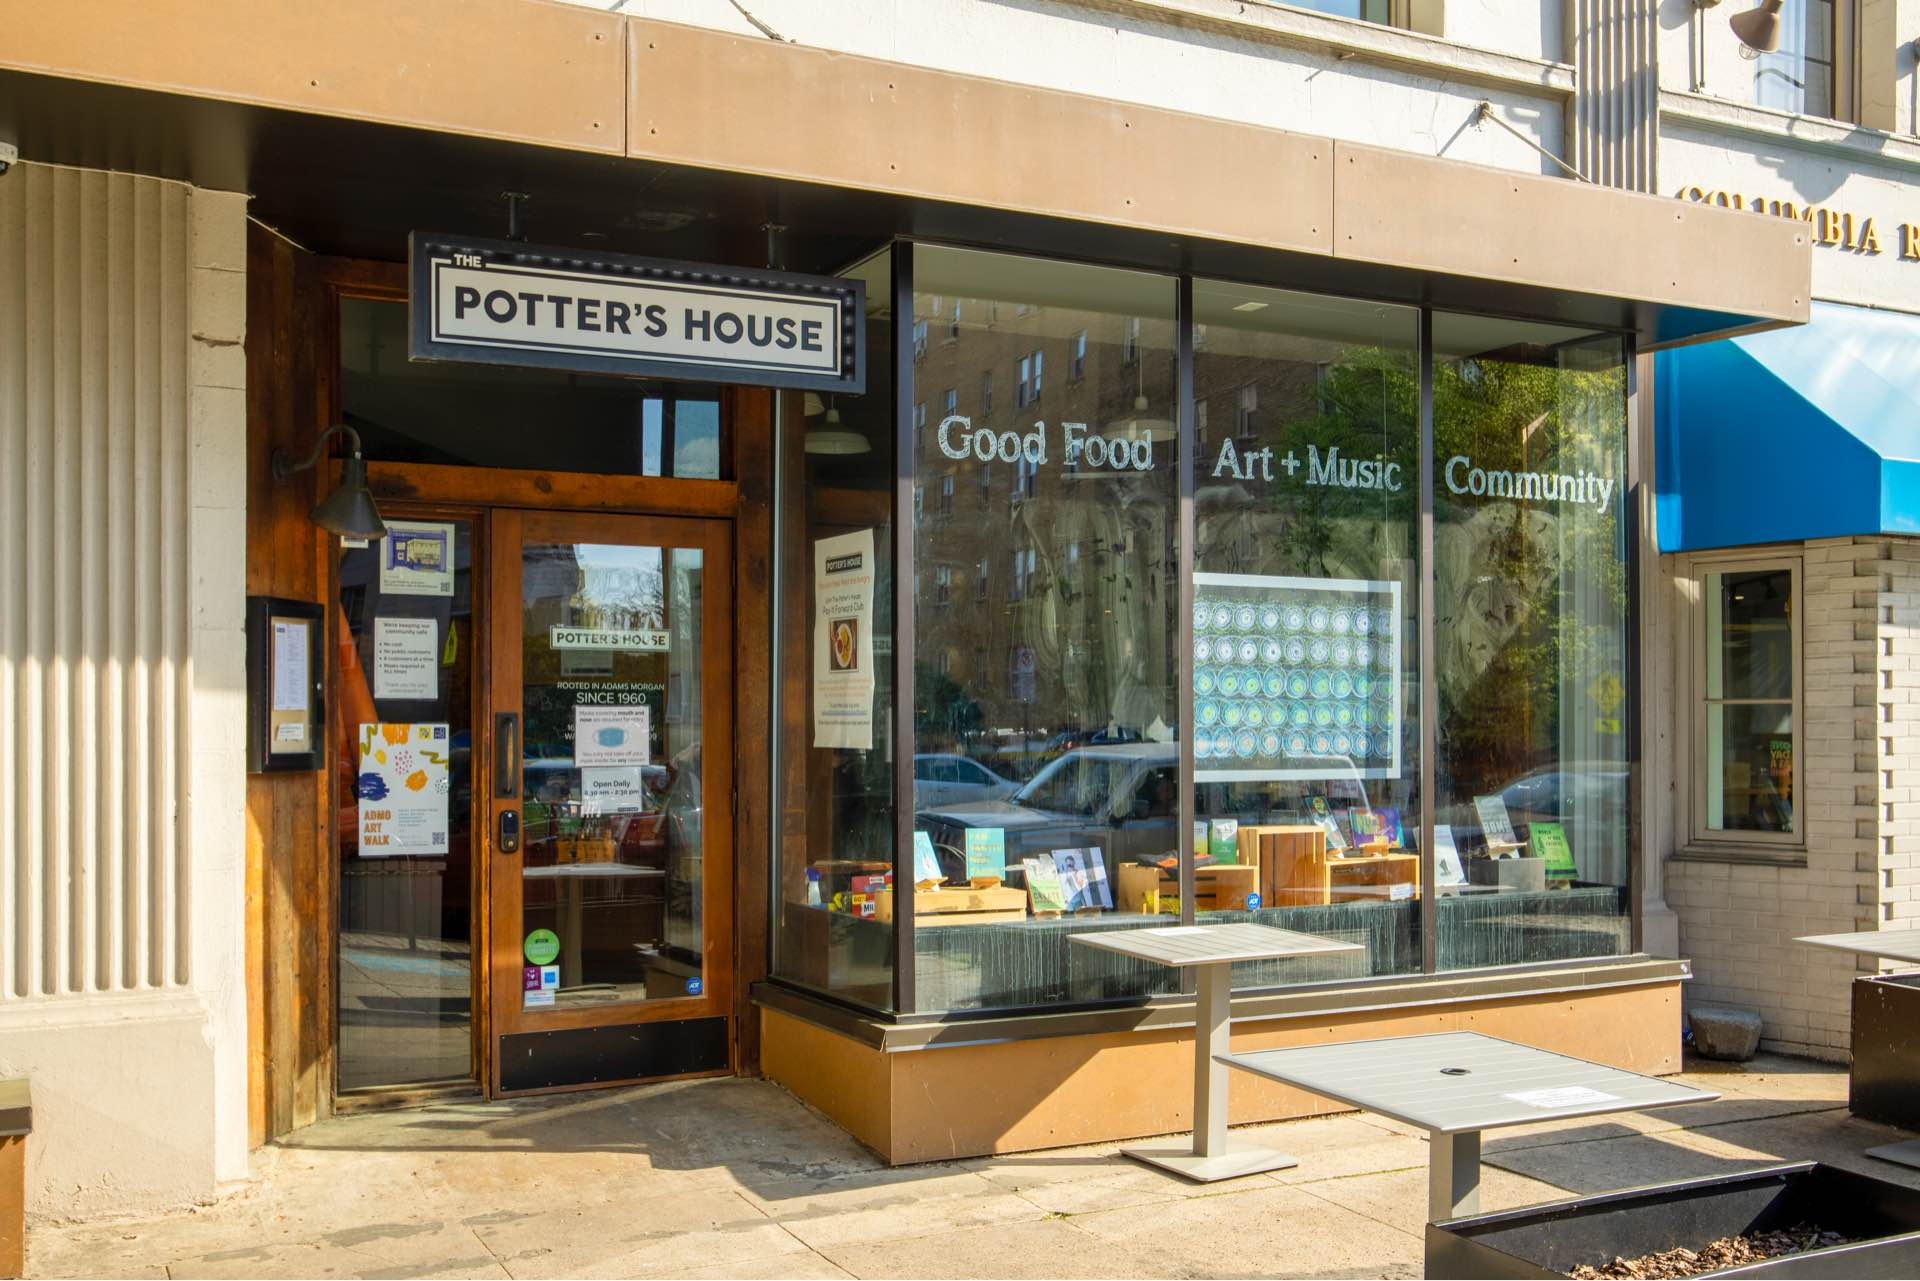 The Potter's House historic bookstore and café